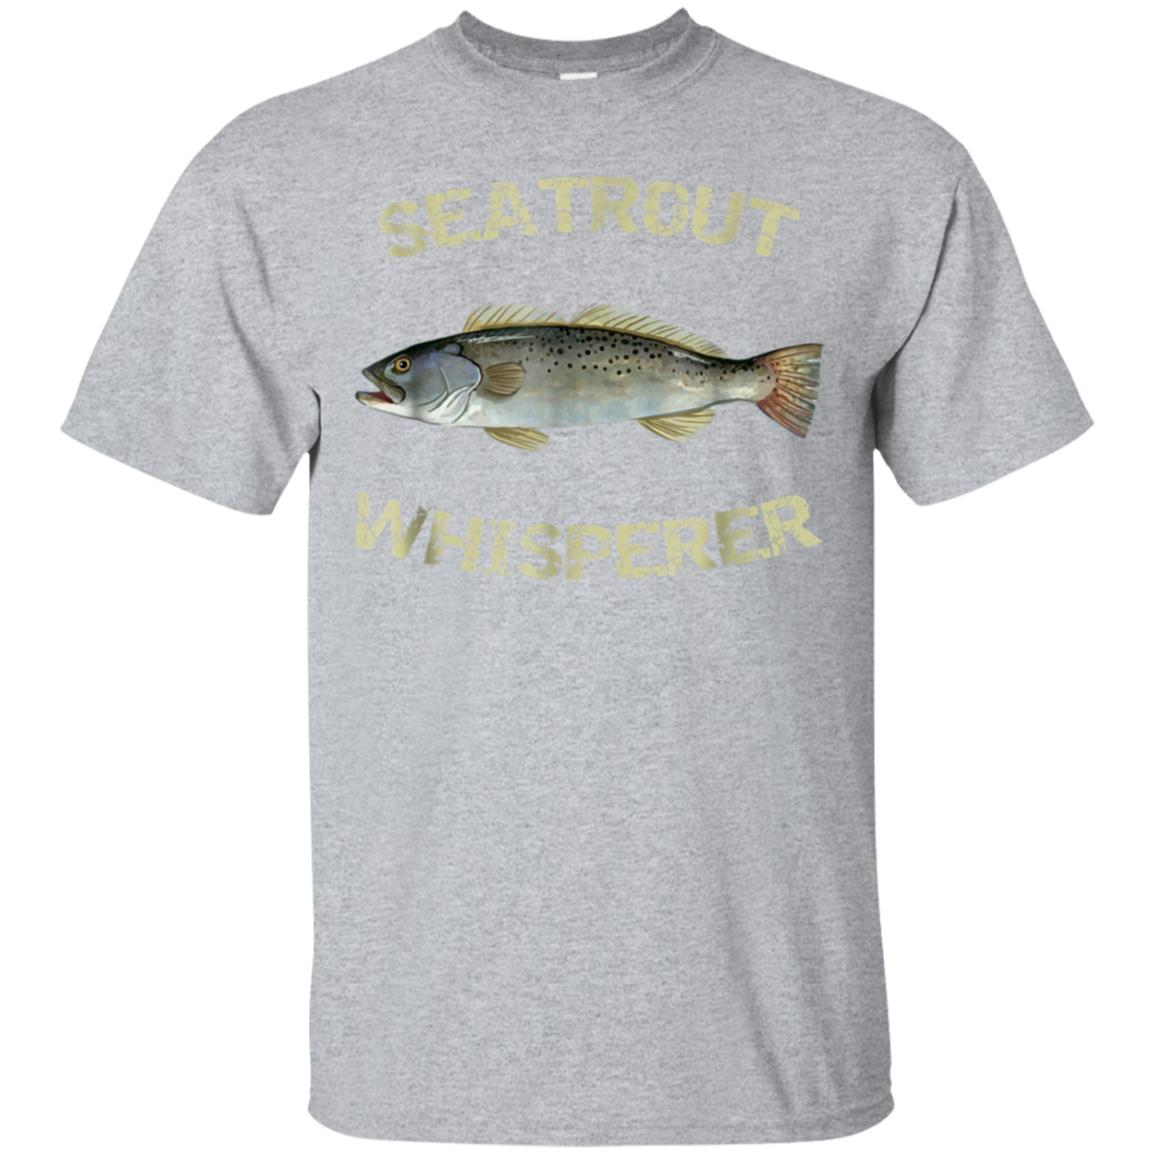 Seatrout Whisperer T-Shirt  Spotted Seatrout Tee 99promocode